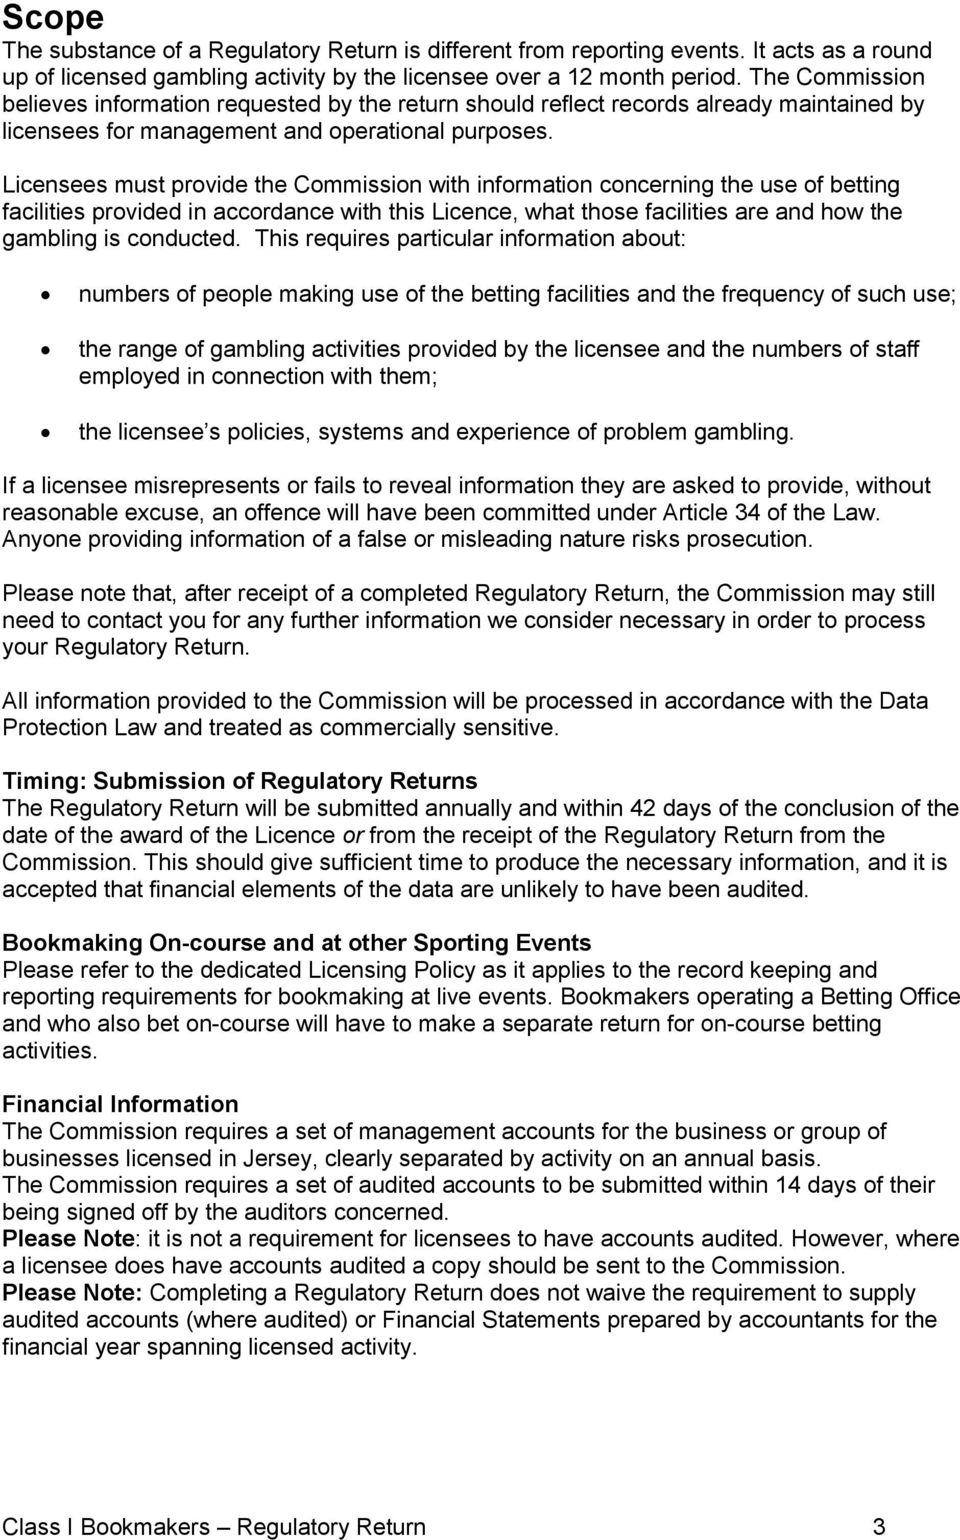 Licensees must provide the Commission with information concerning the use of betting facilities provided in accordance with this Licence, what those facilities are and how the gambling is conducted.